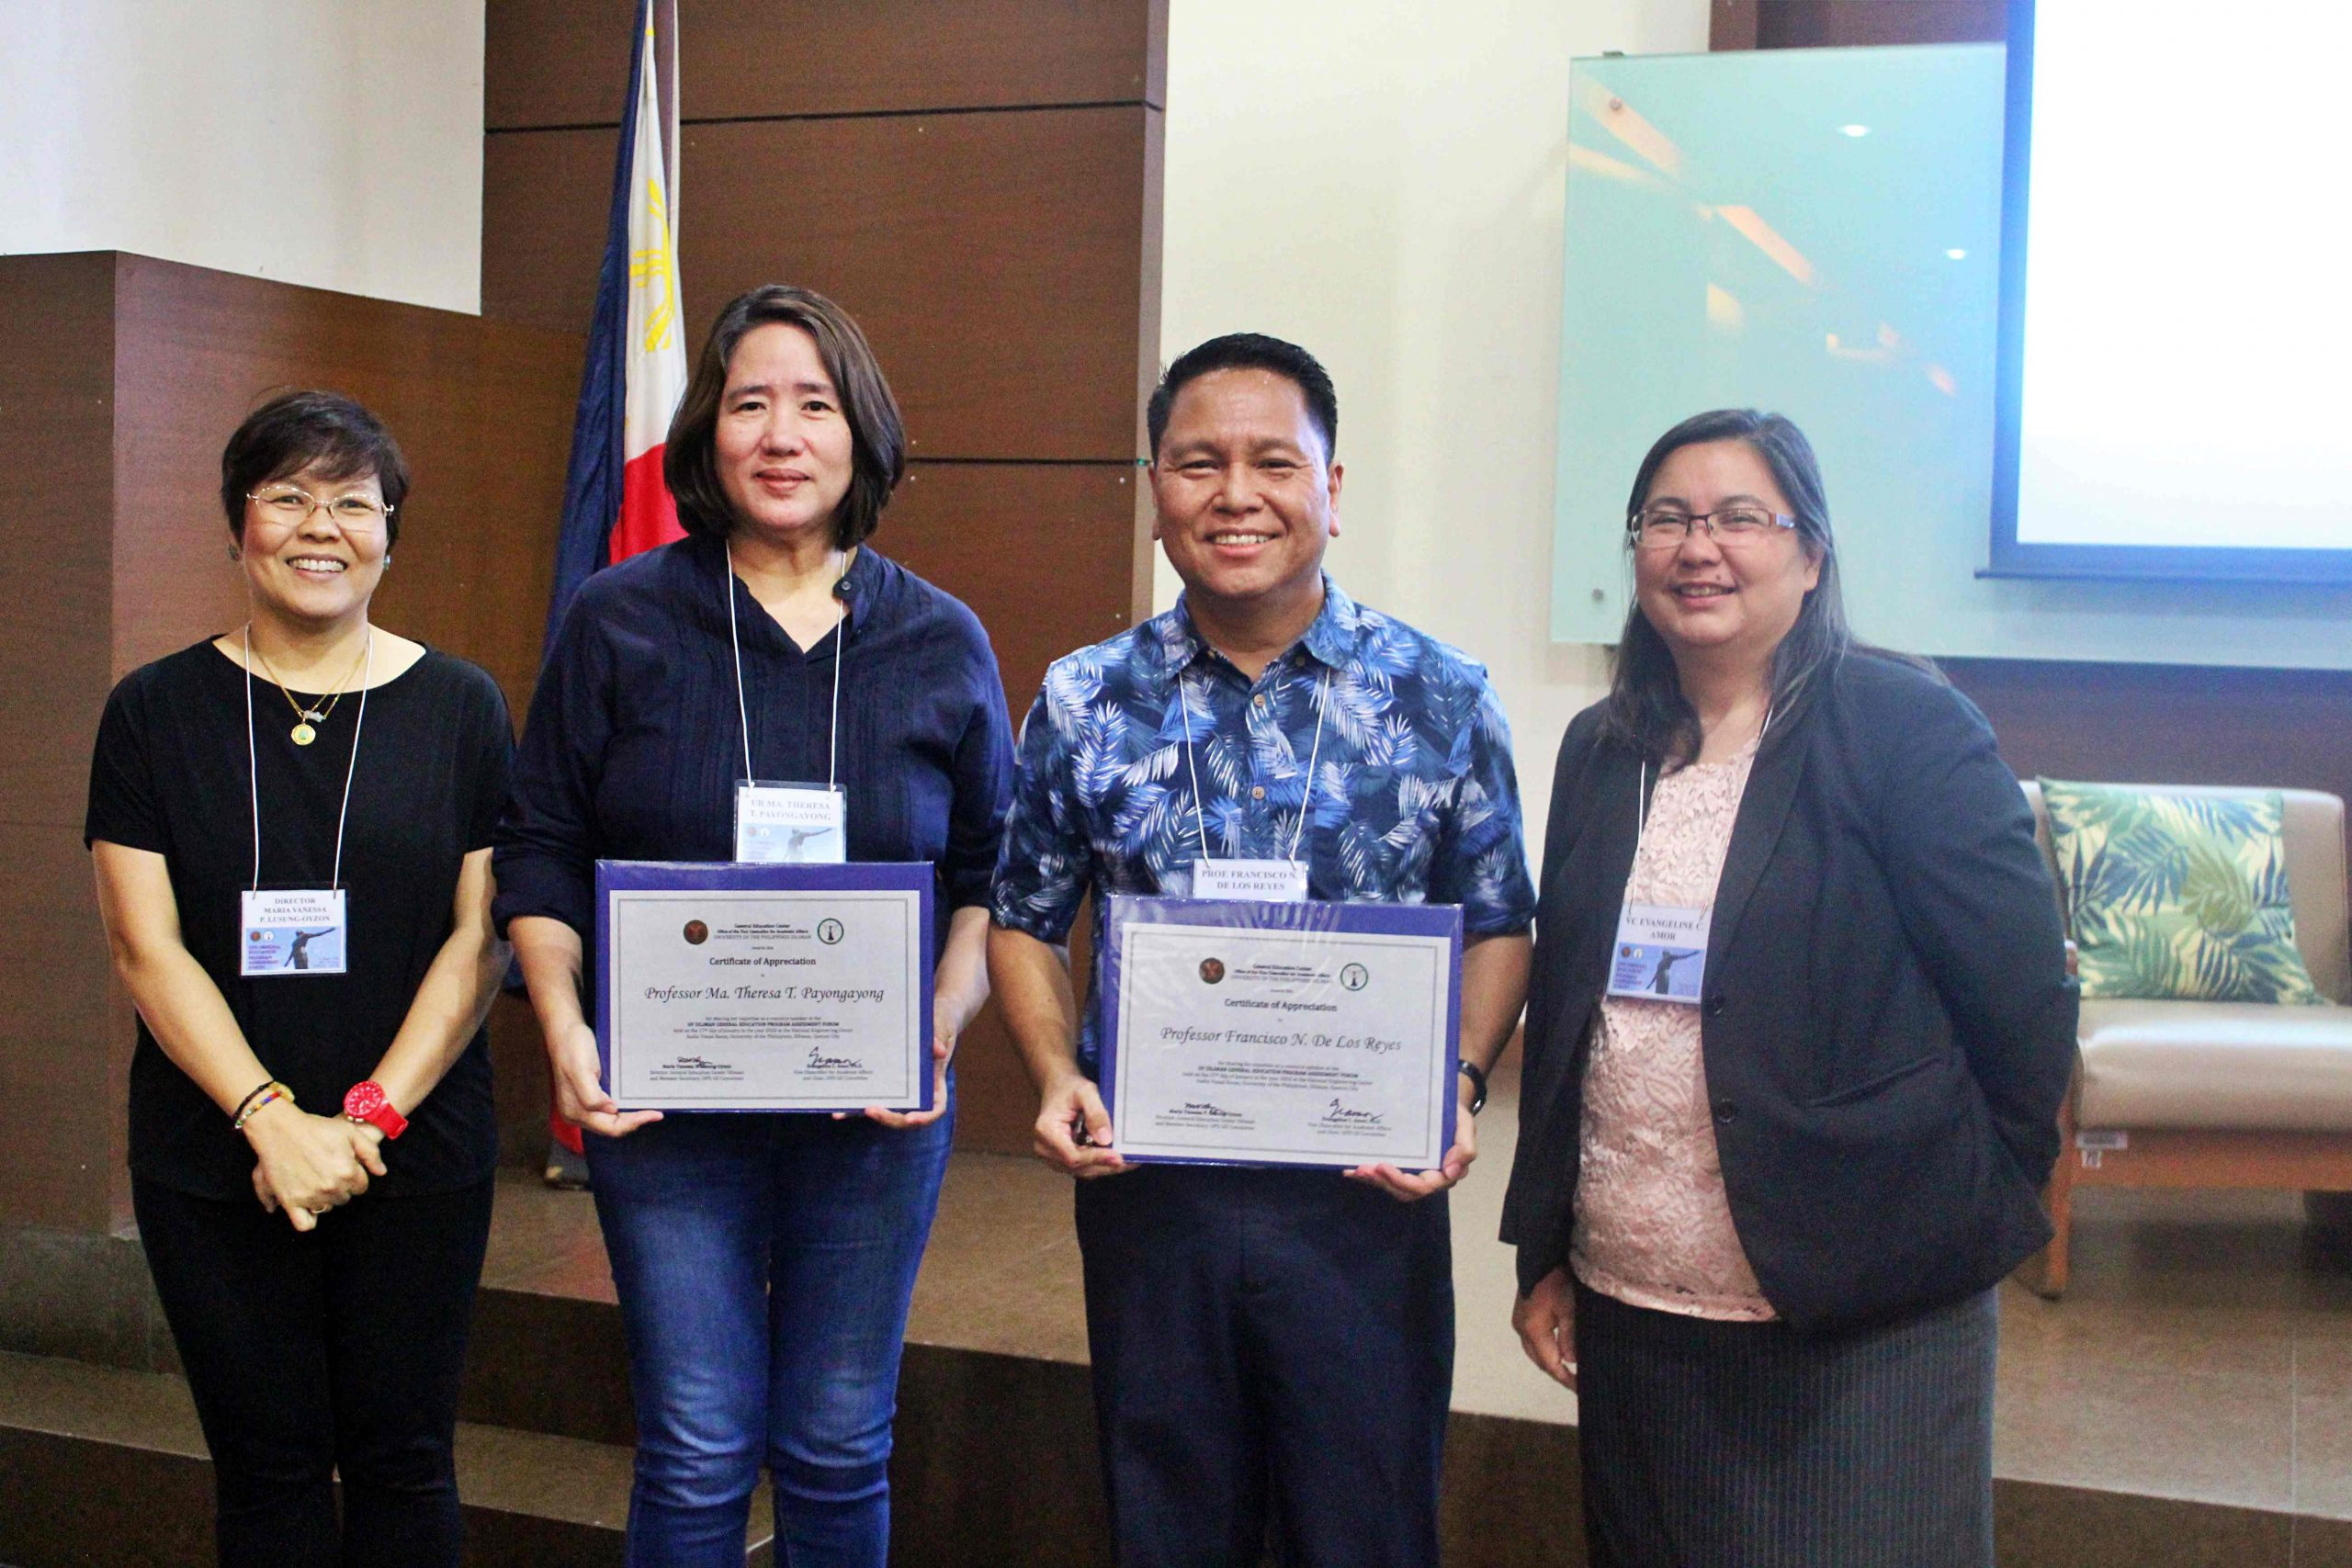 Prof. Payongayong and Prof. De Los Reyes receive their Certificate of Appreciation